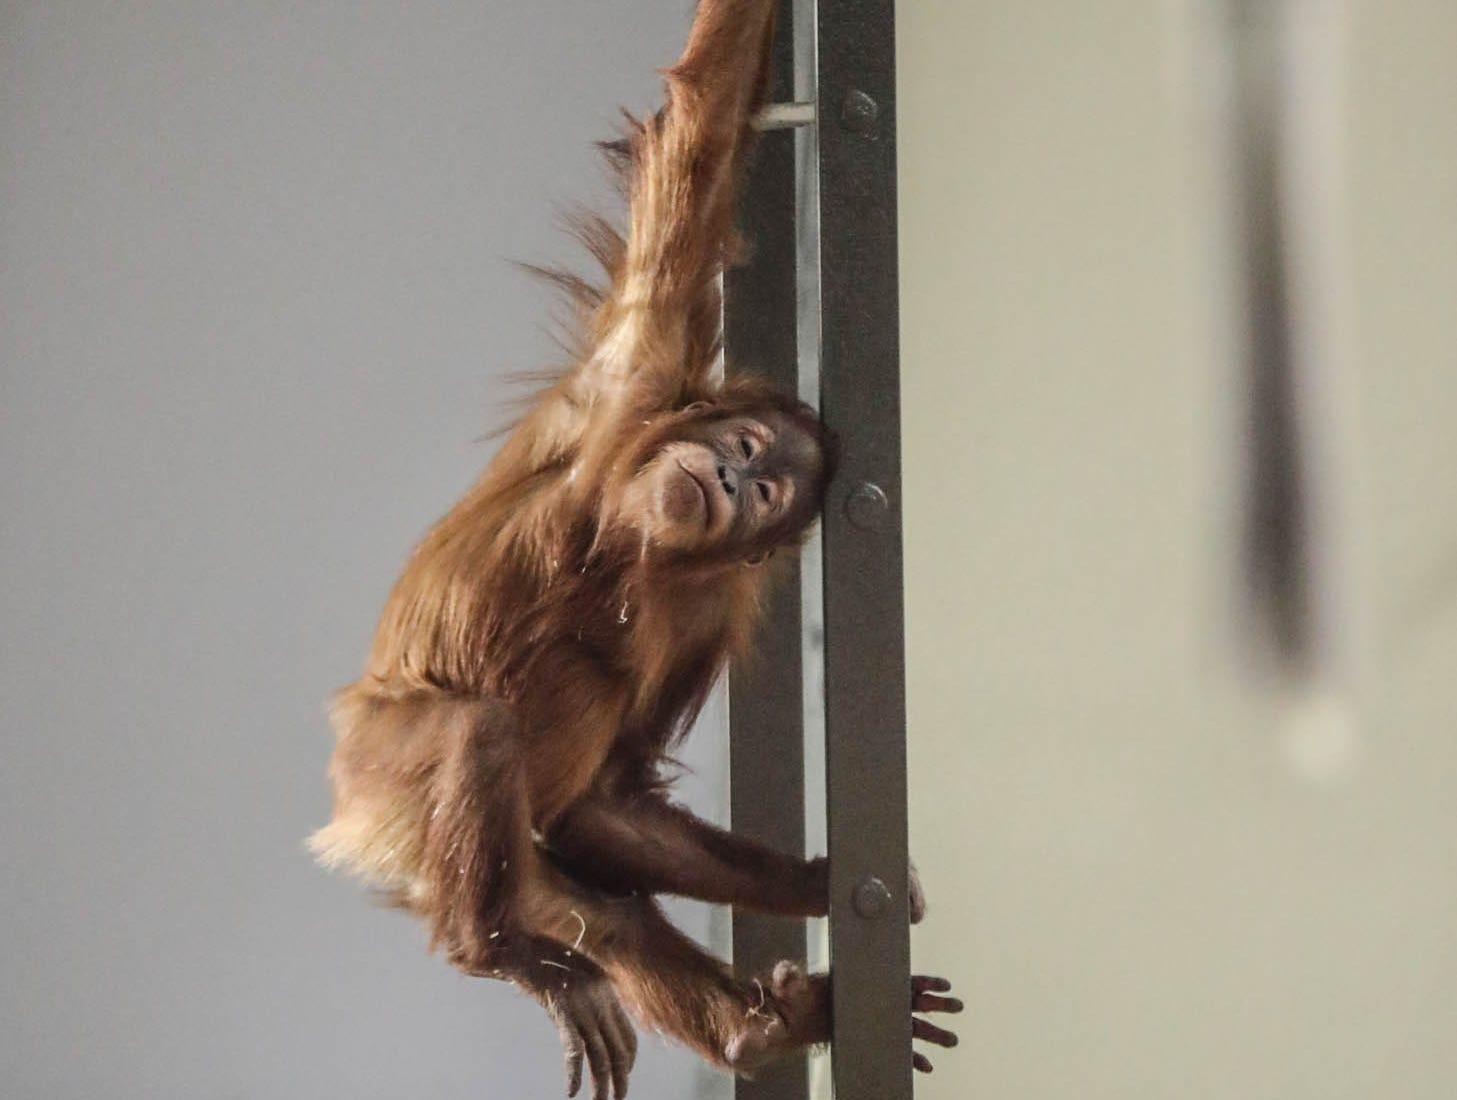 Mila, a two year old orangutan plays on a ladder in her enclosure during Christmas at the Indianapolis Zoo on Wednesday, Dec. 19, 2018.